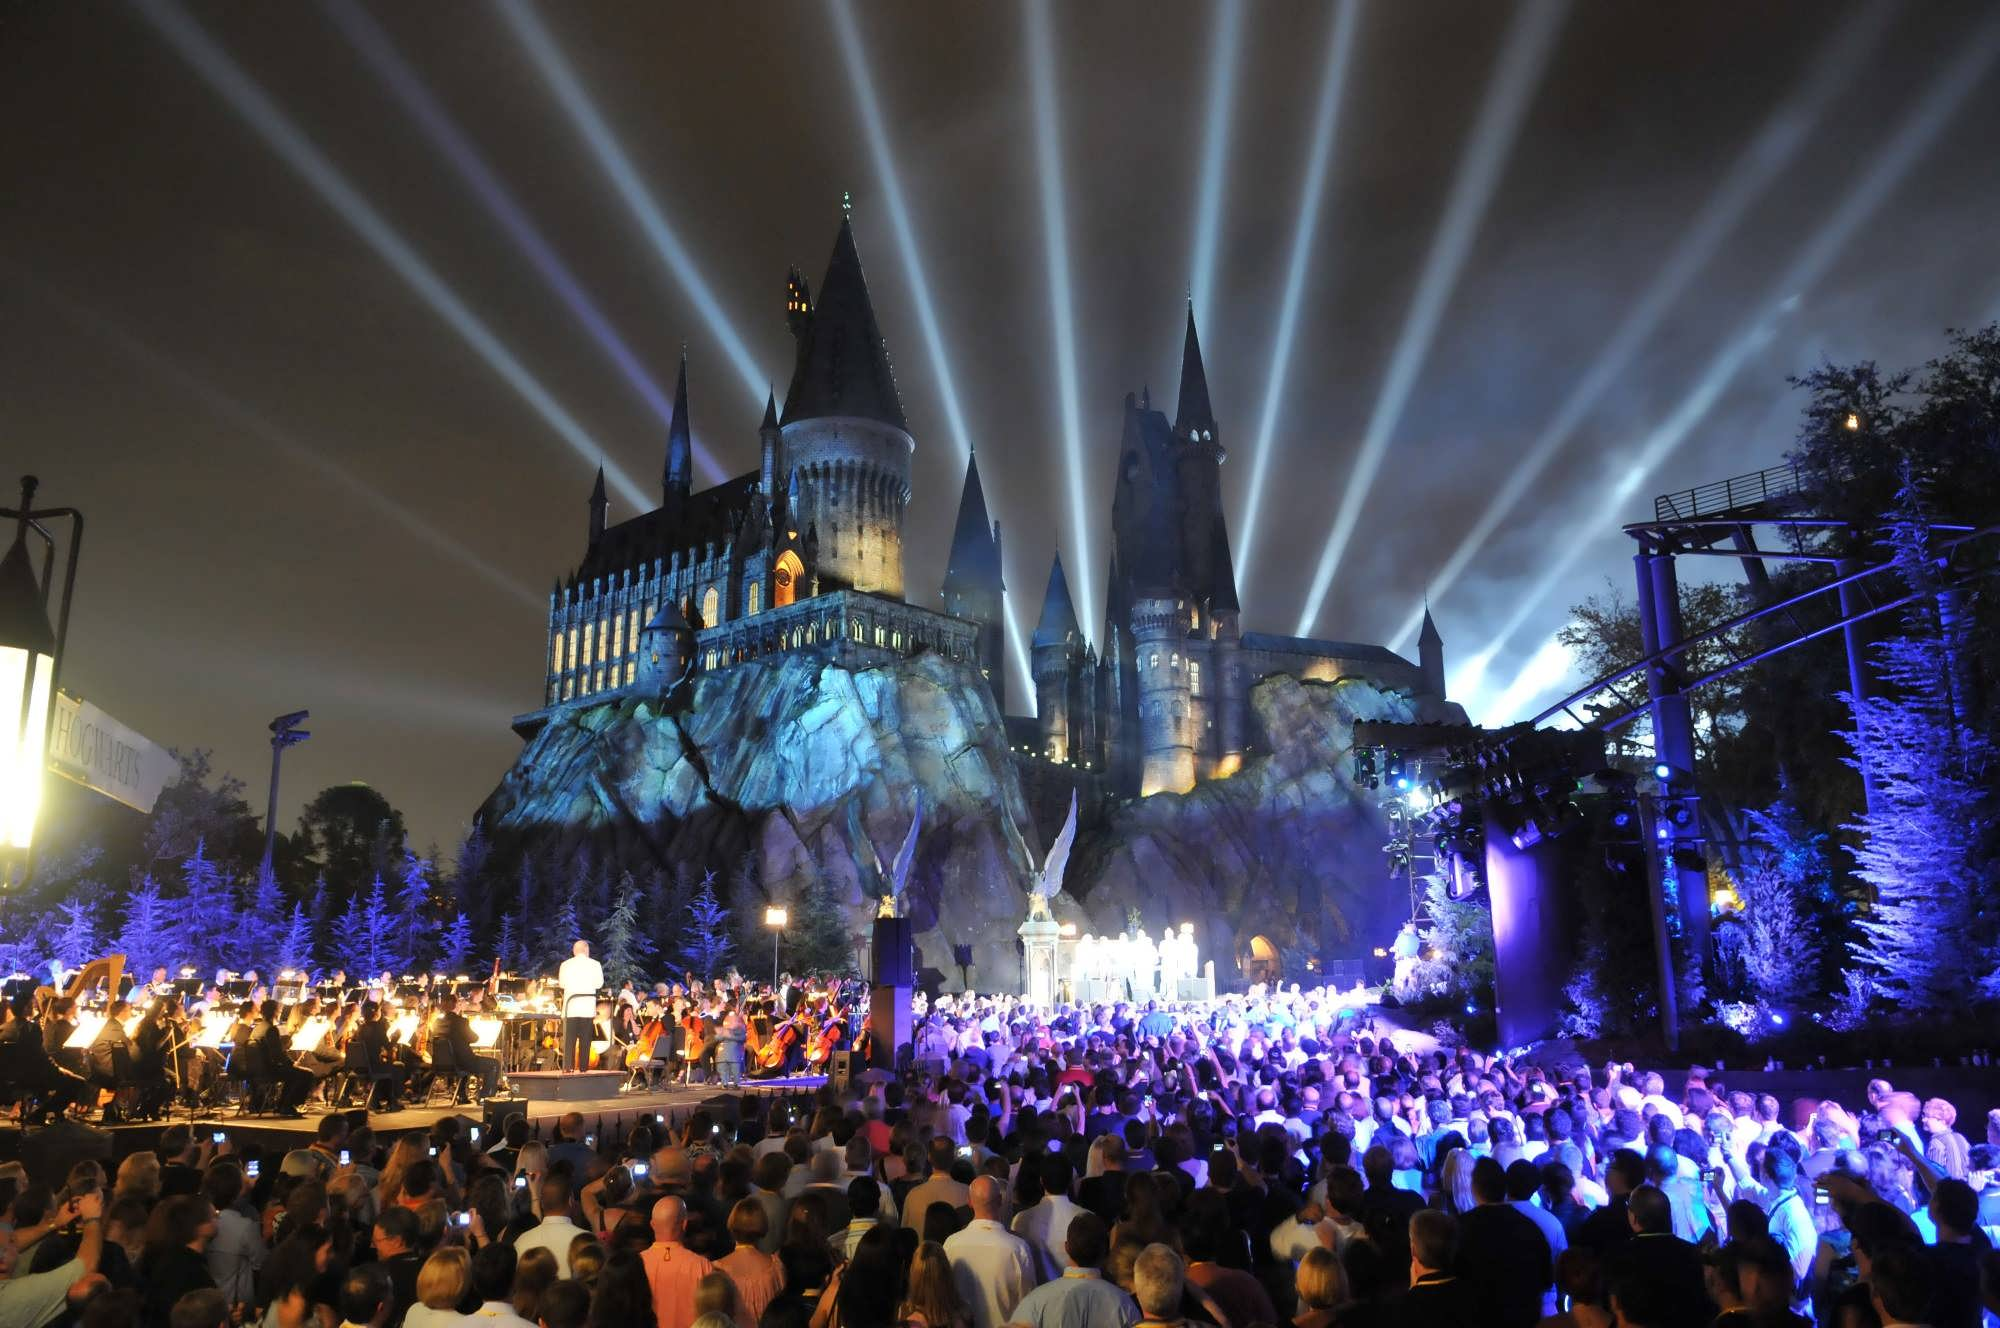 wizarding-world-of-harry-potter-grand-opening-gala-oi.jpg